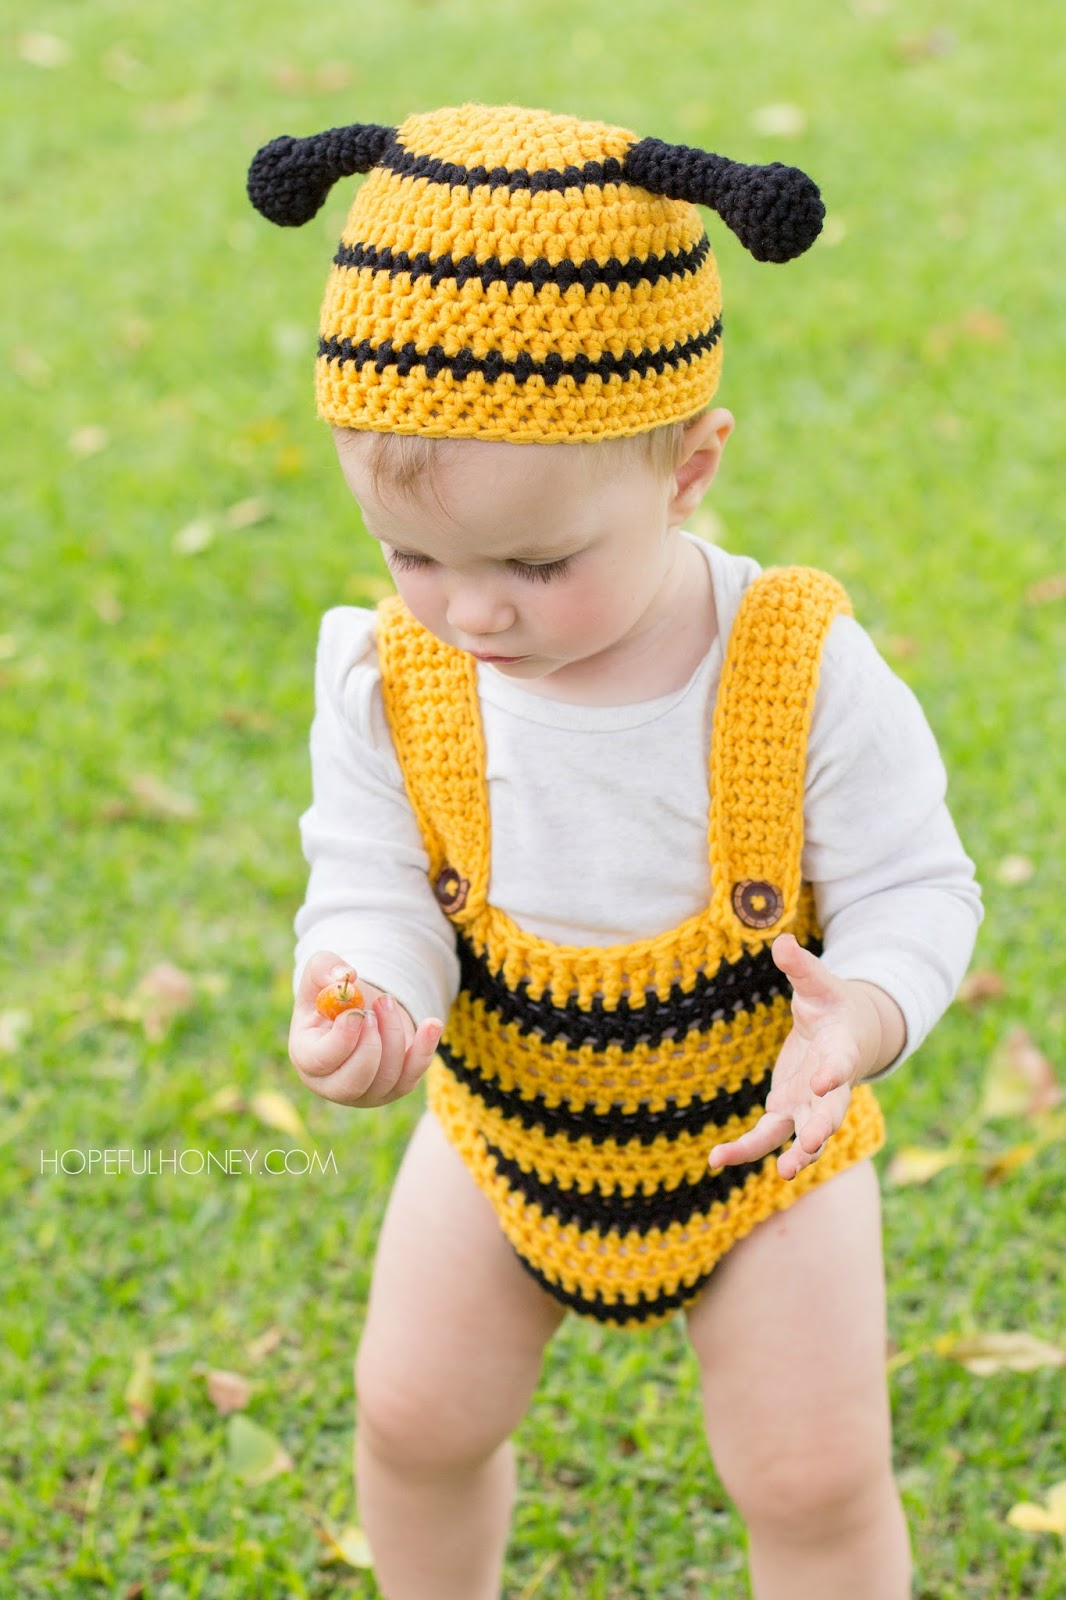 Crochet Patterns Baby Bee Yarn : Hopeful Honey Craft, Crochet, Create: Bumble Bee Baby ...